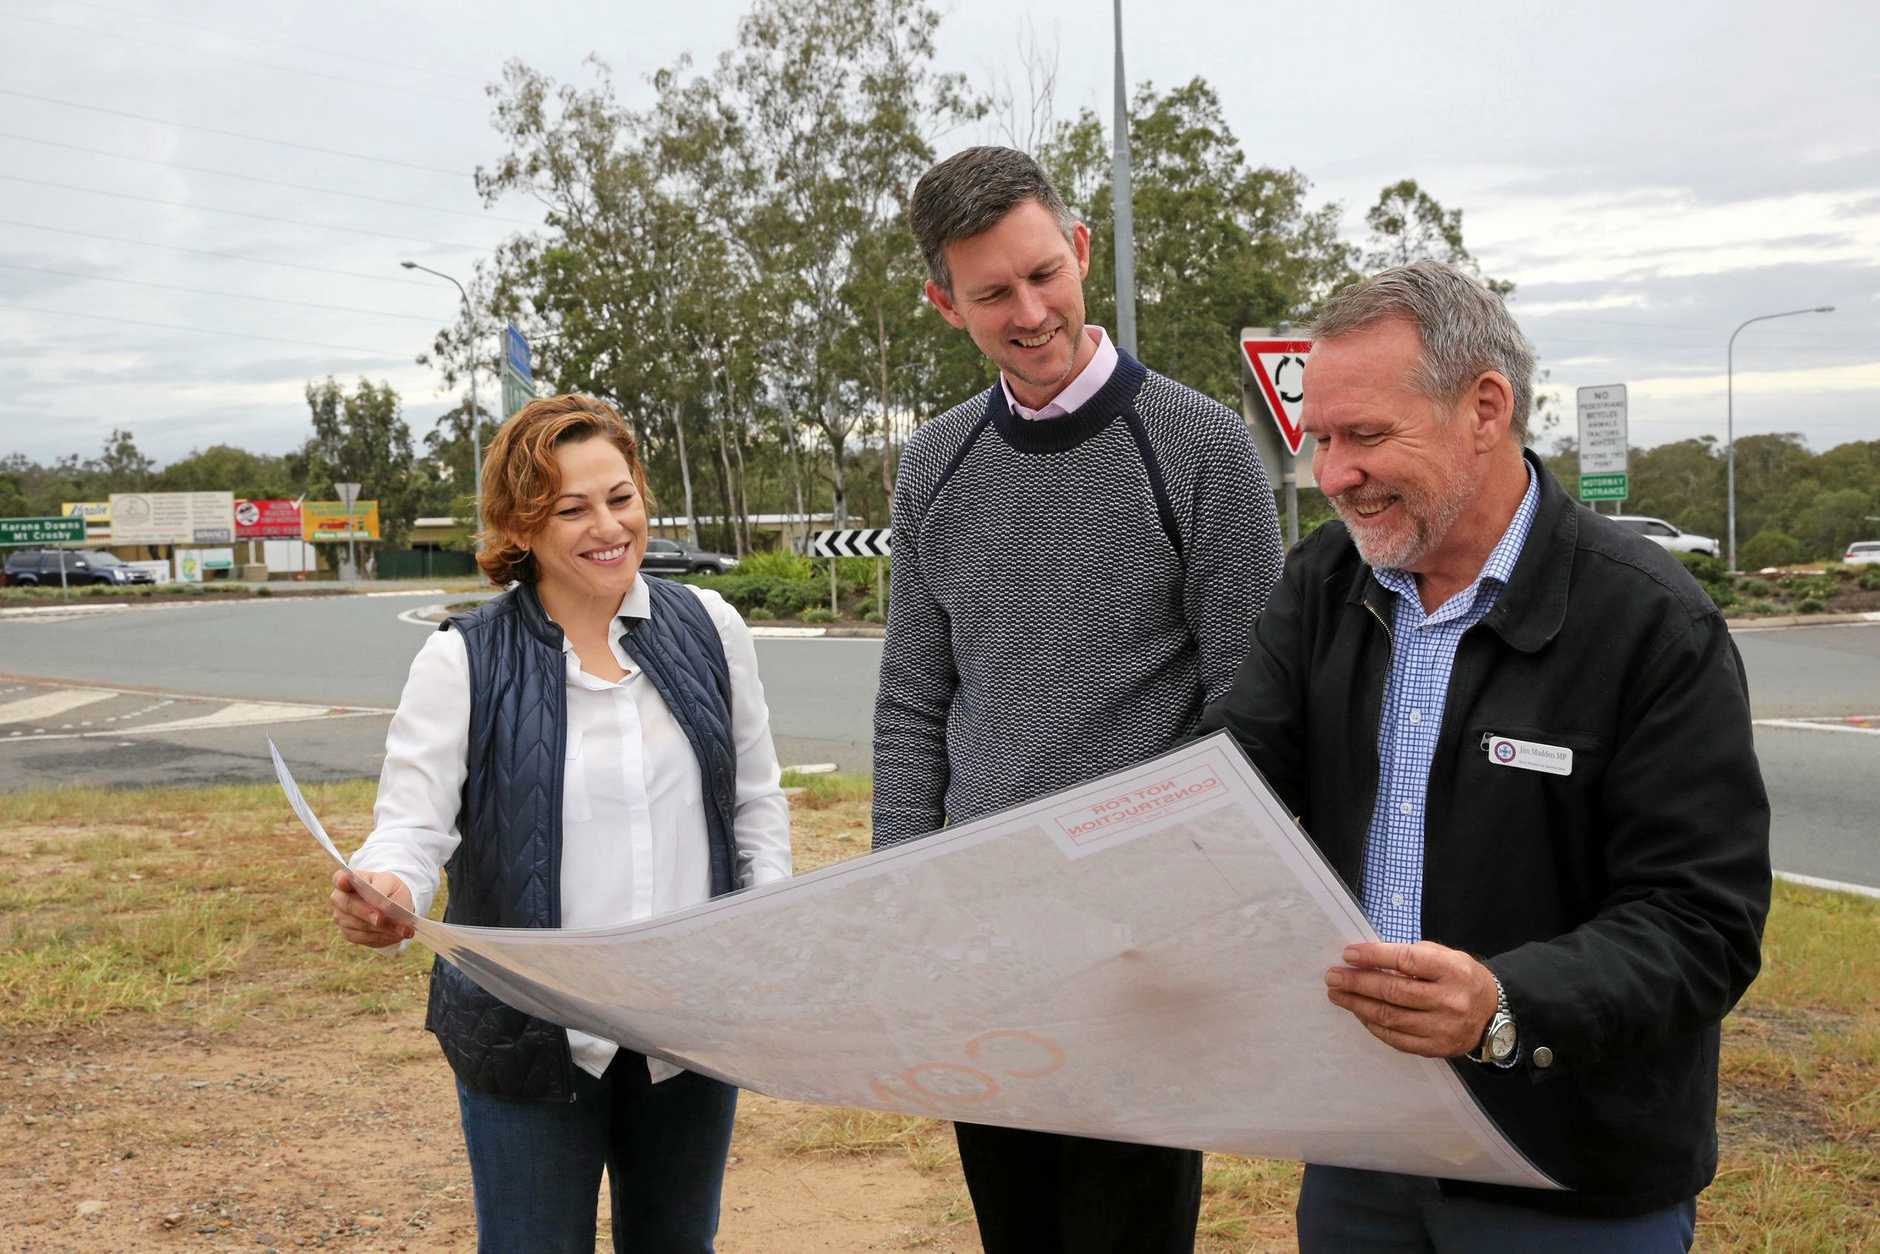 Treasurer and Deputy Premier Jackie Trad, Minister for Main Roads and Transport Mark Bailey and Ipswich West MP Jim Madden at a recent Warrego Hwy funding announcement.